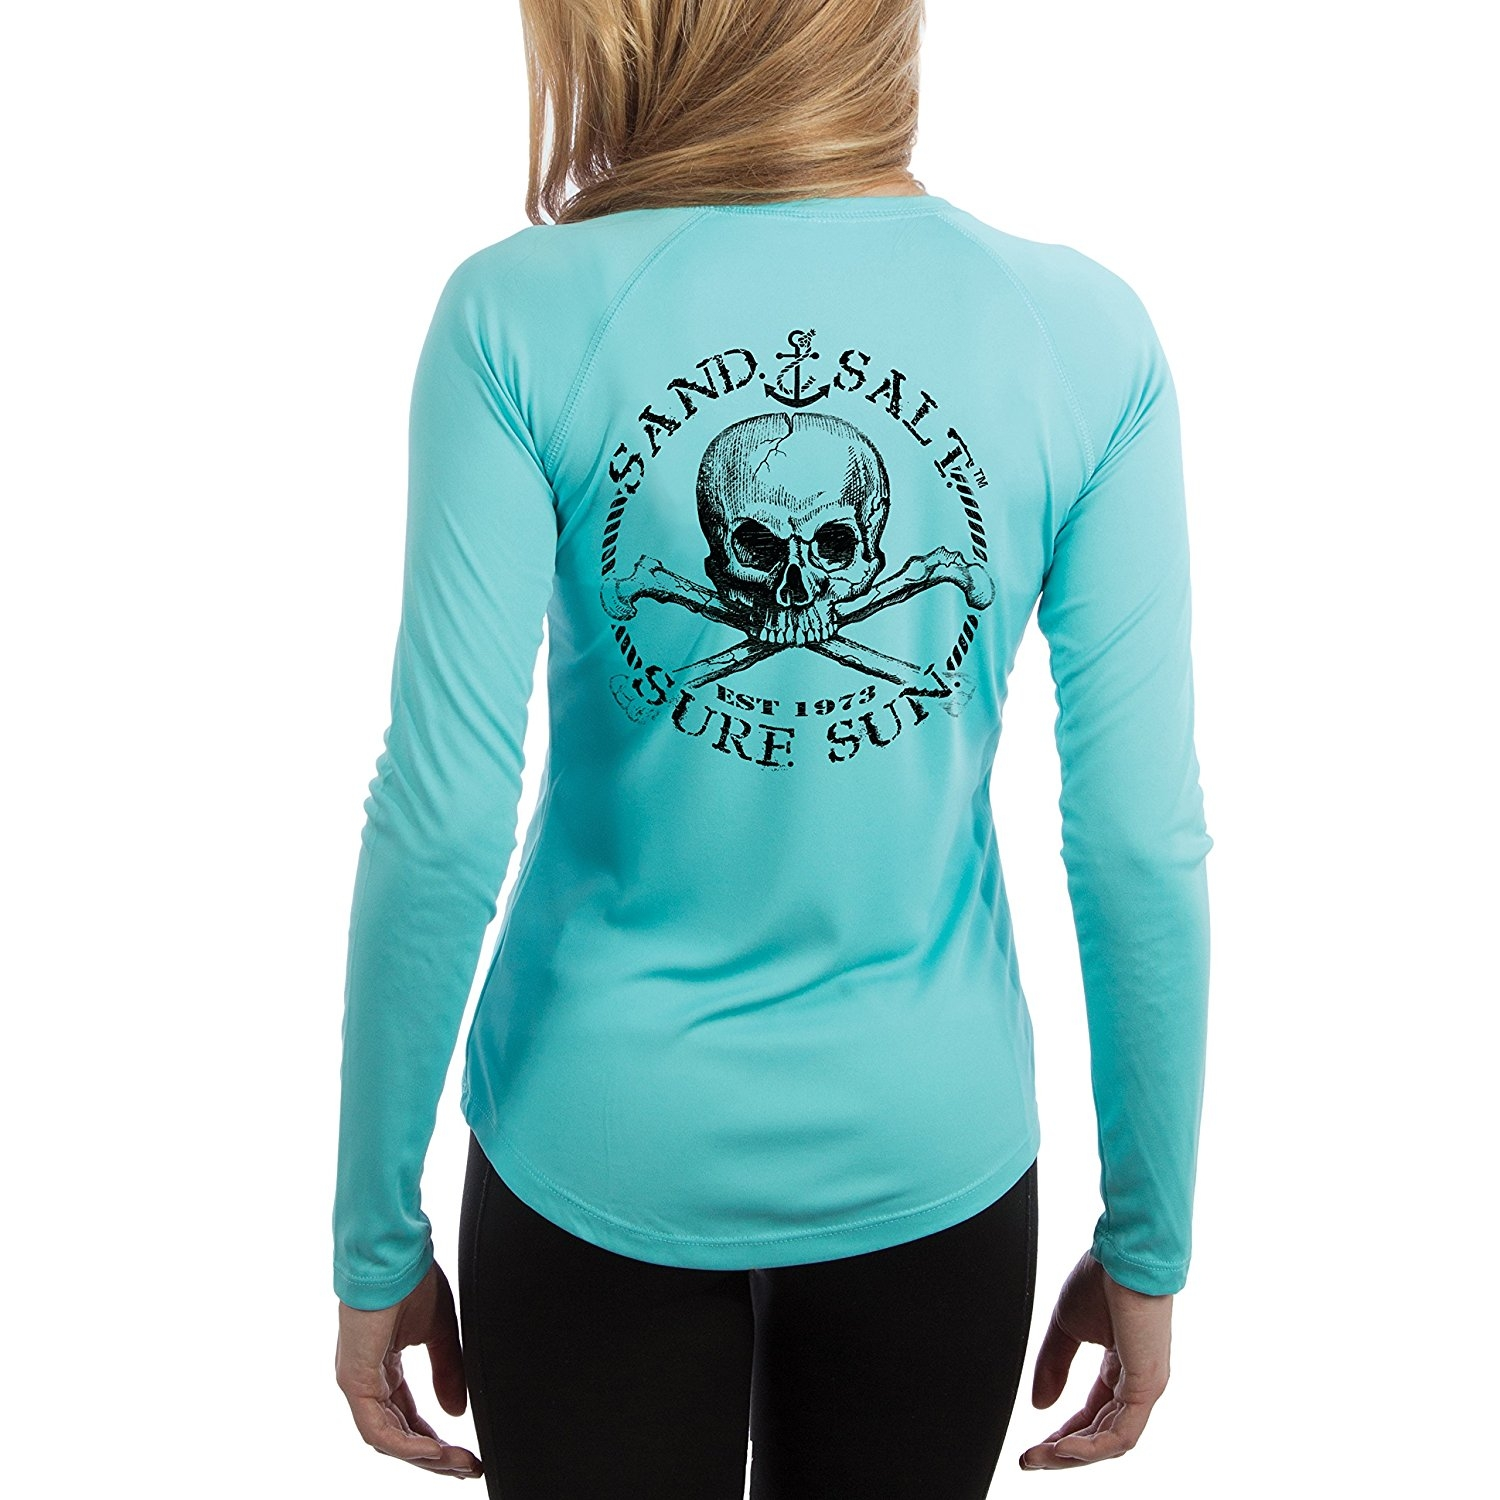 Skull Women's UPF 50+ UV/Sun Protection Performance T-shirt